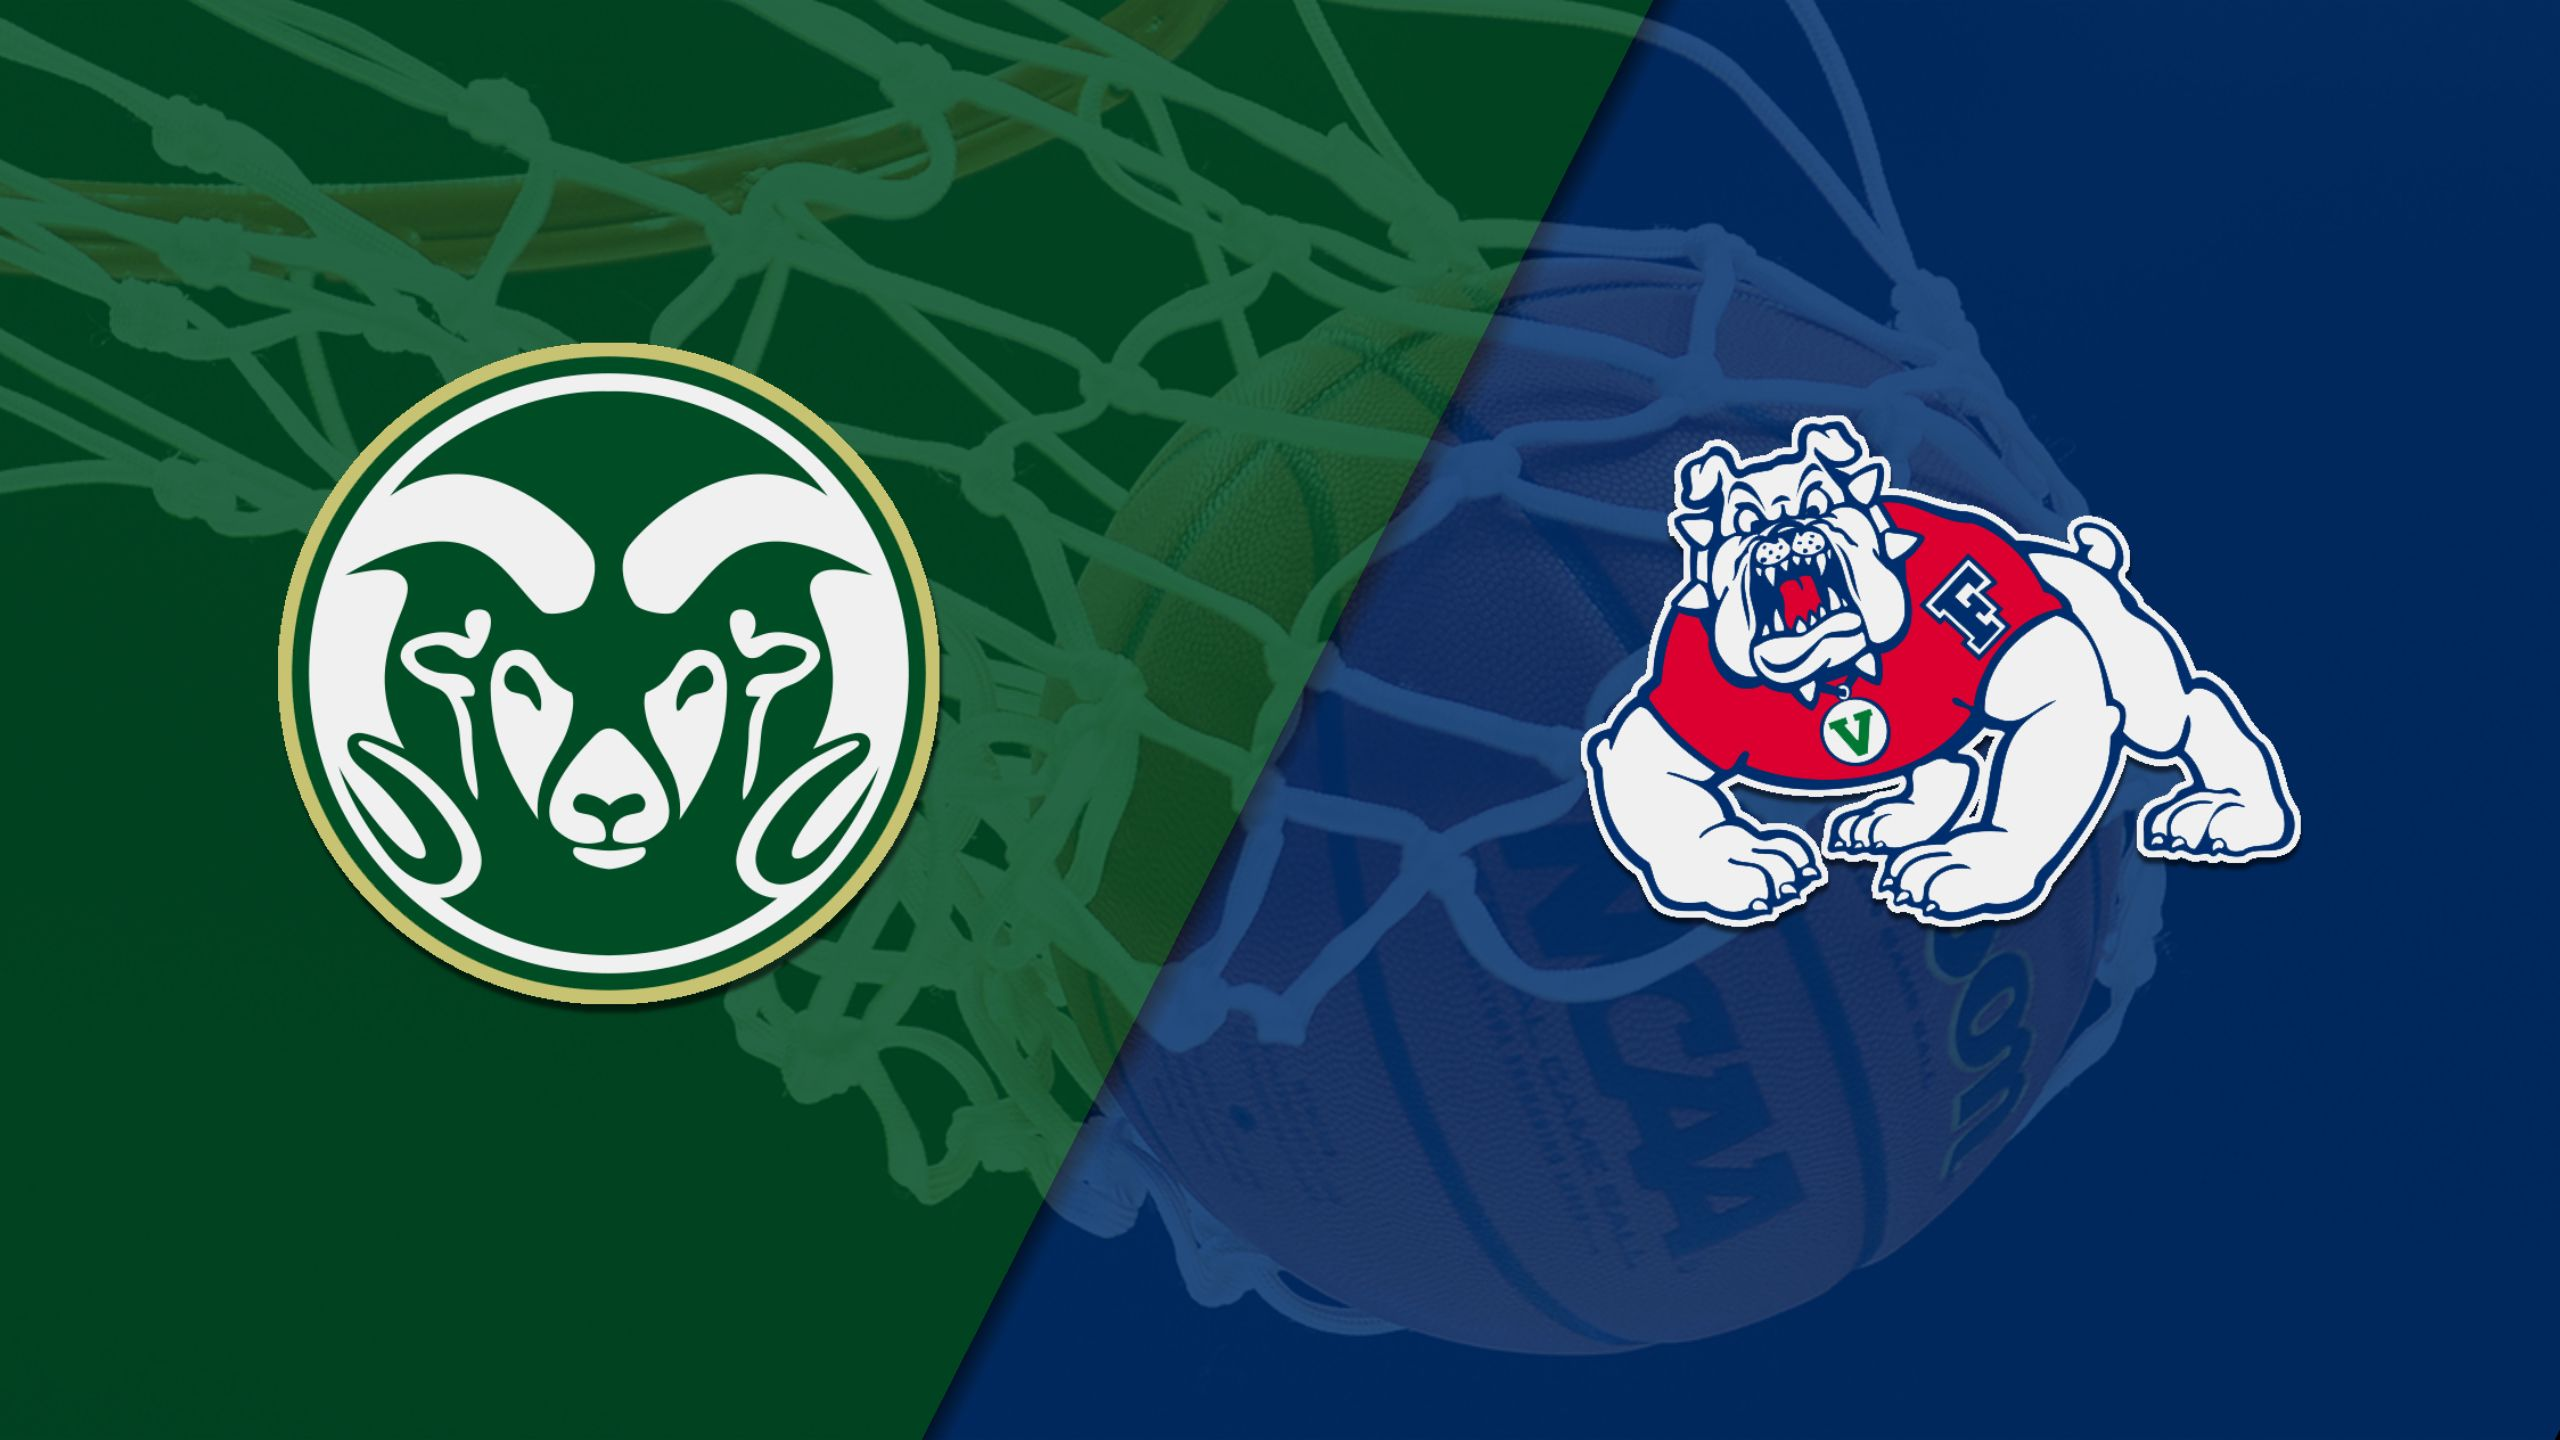 Colorado State vs. Fresno State (M Basketball)